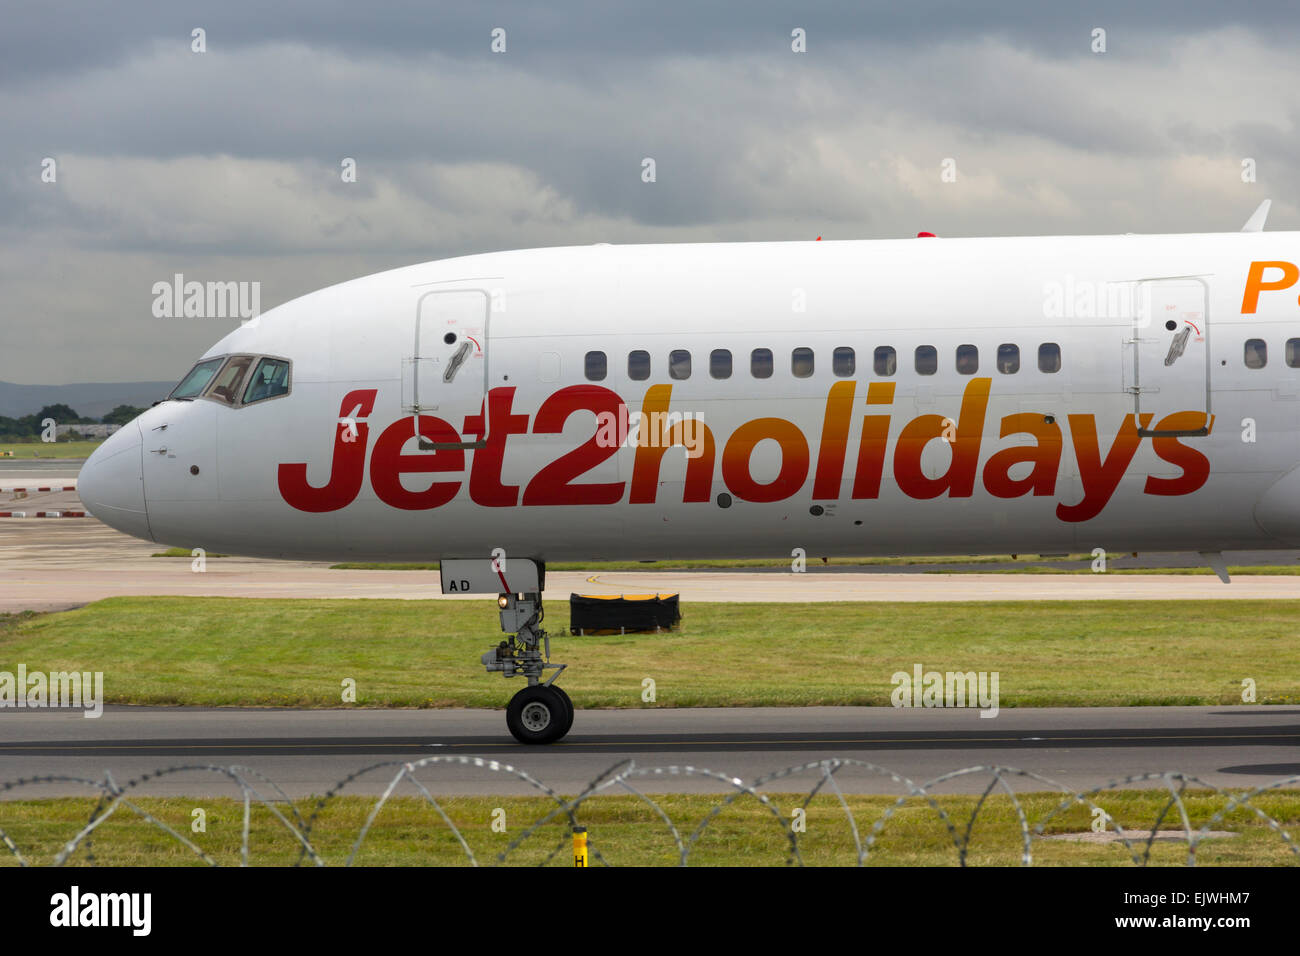 Jet2holidays branded aircraft taxiing towards the terminal at Manchester airport shortly after landing. - Stock Image